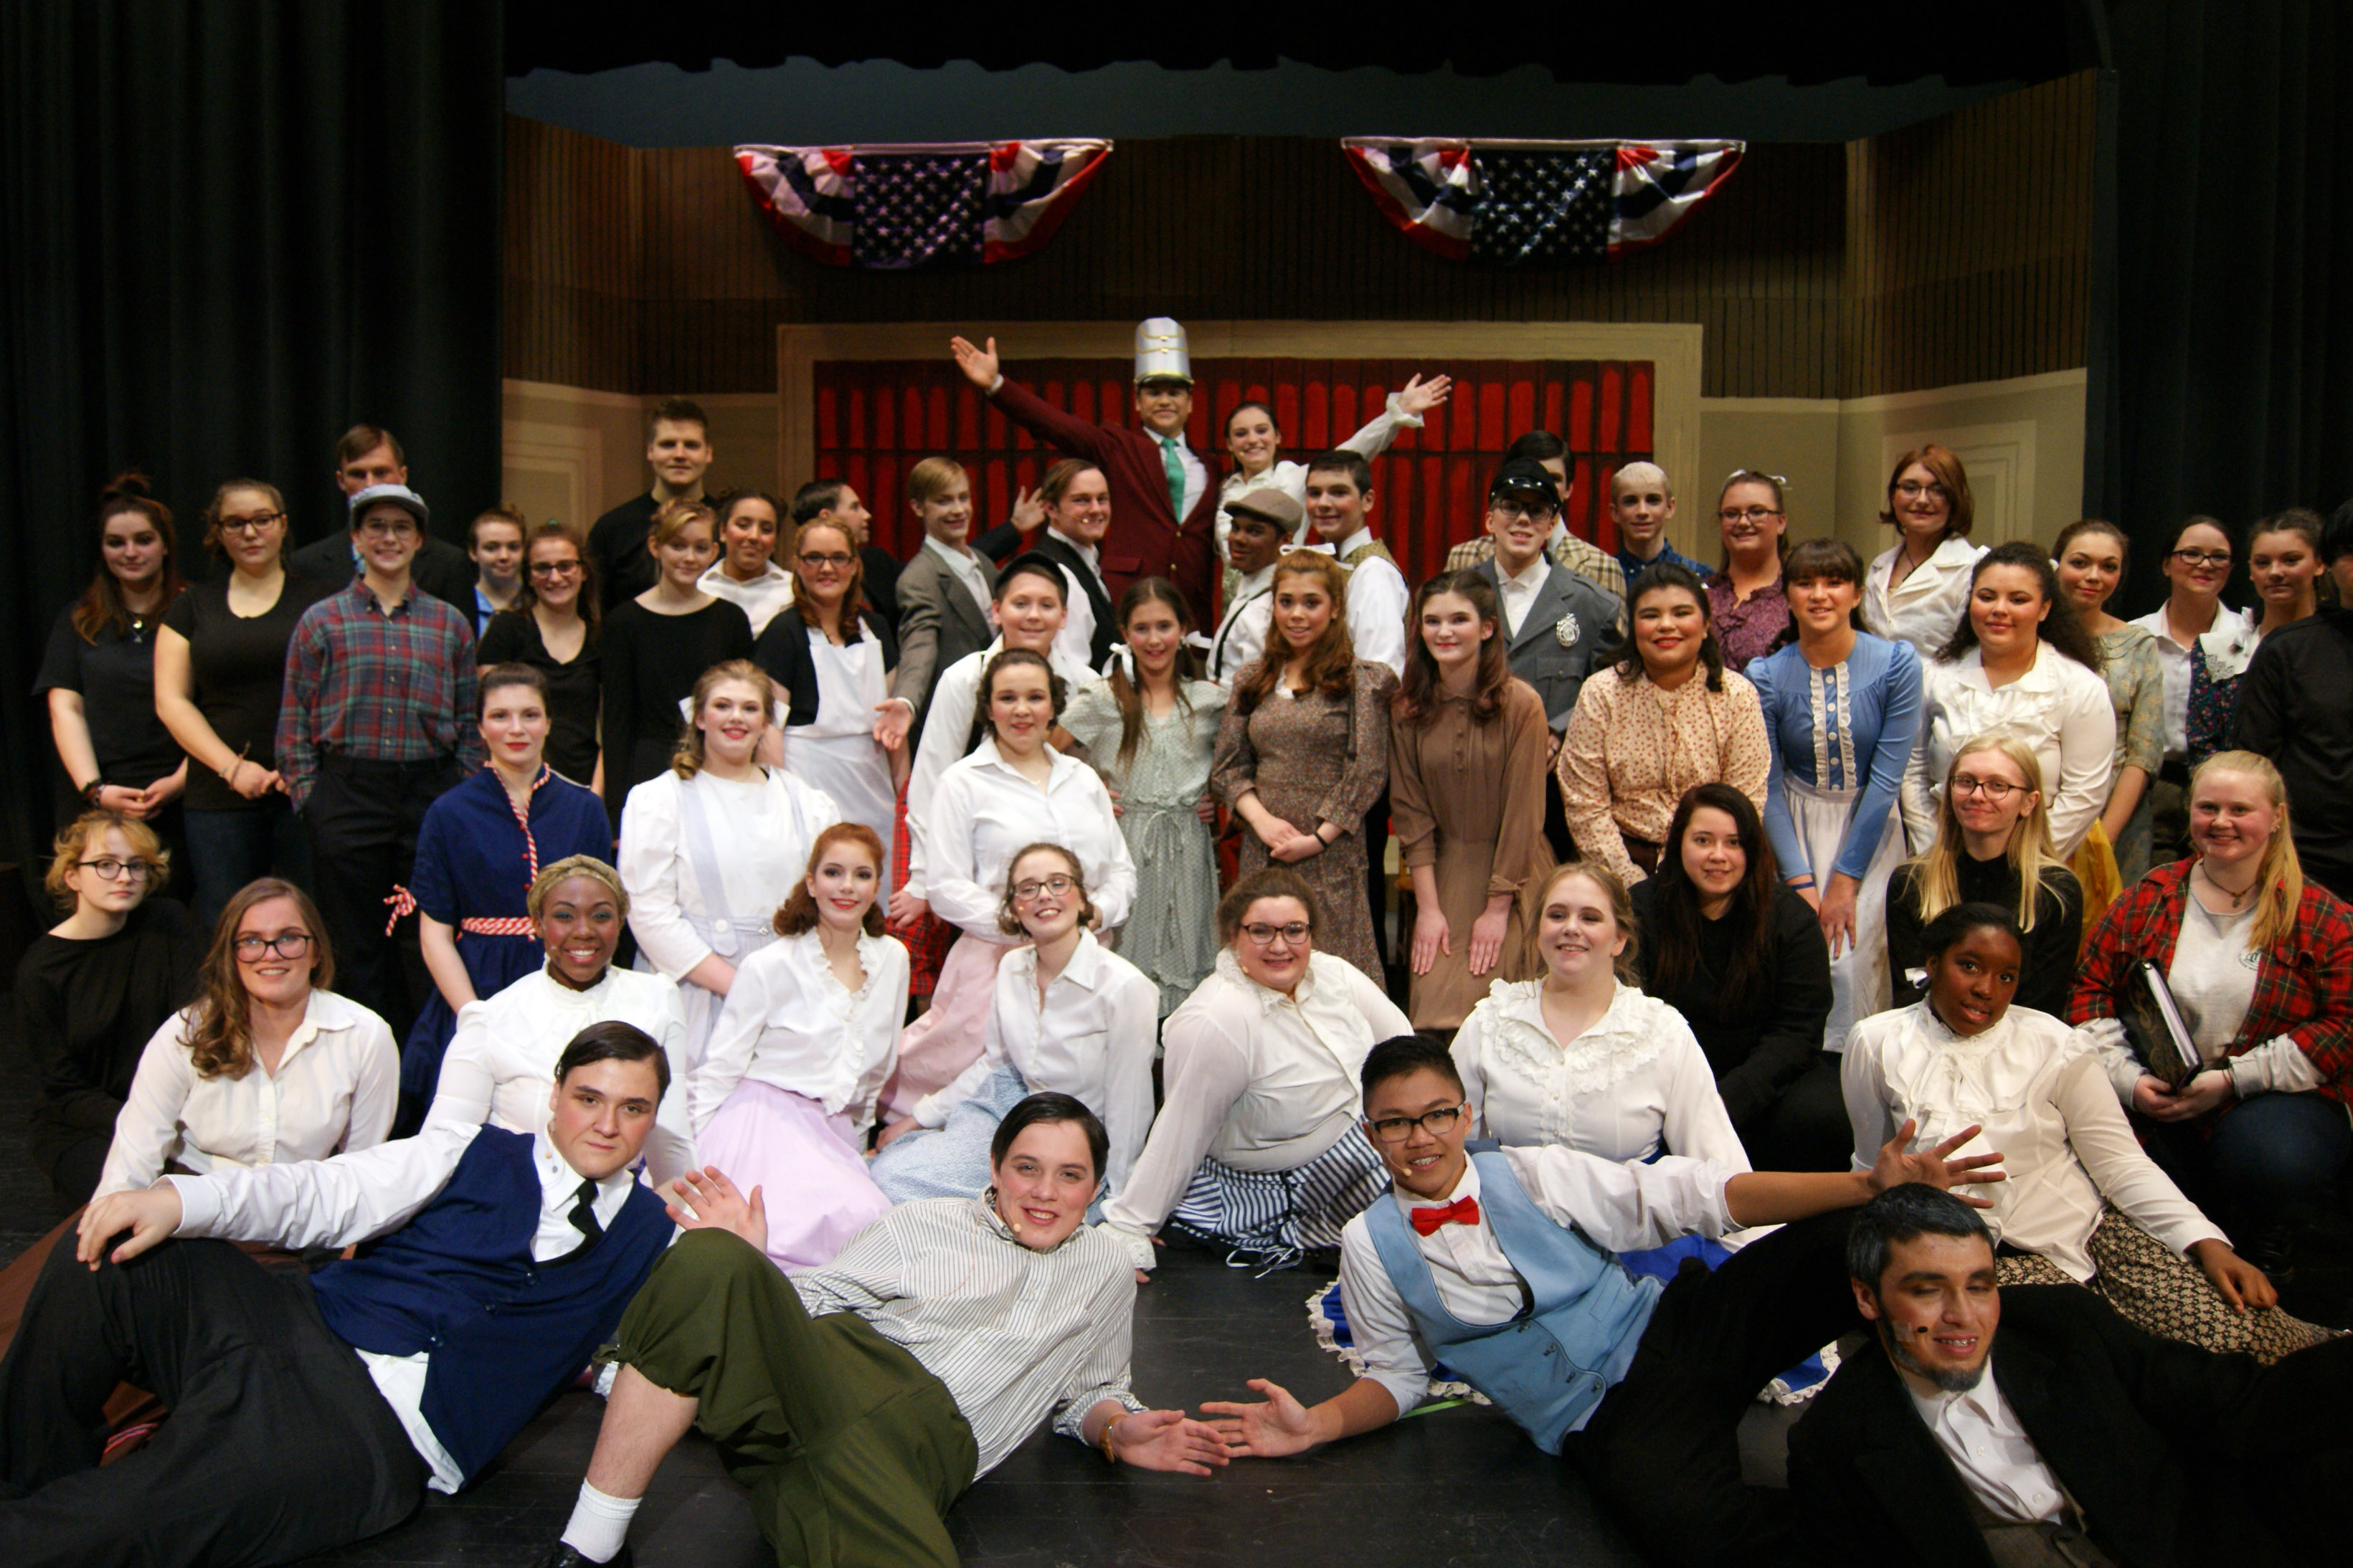 Cast & Crew of The Music Man